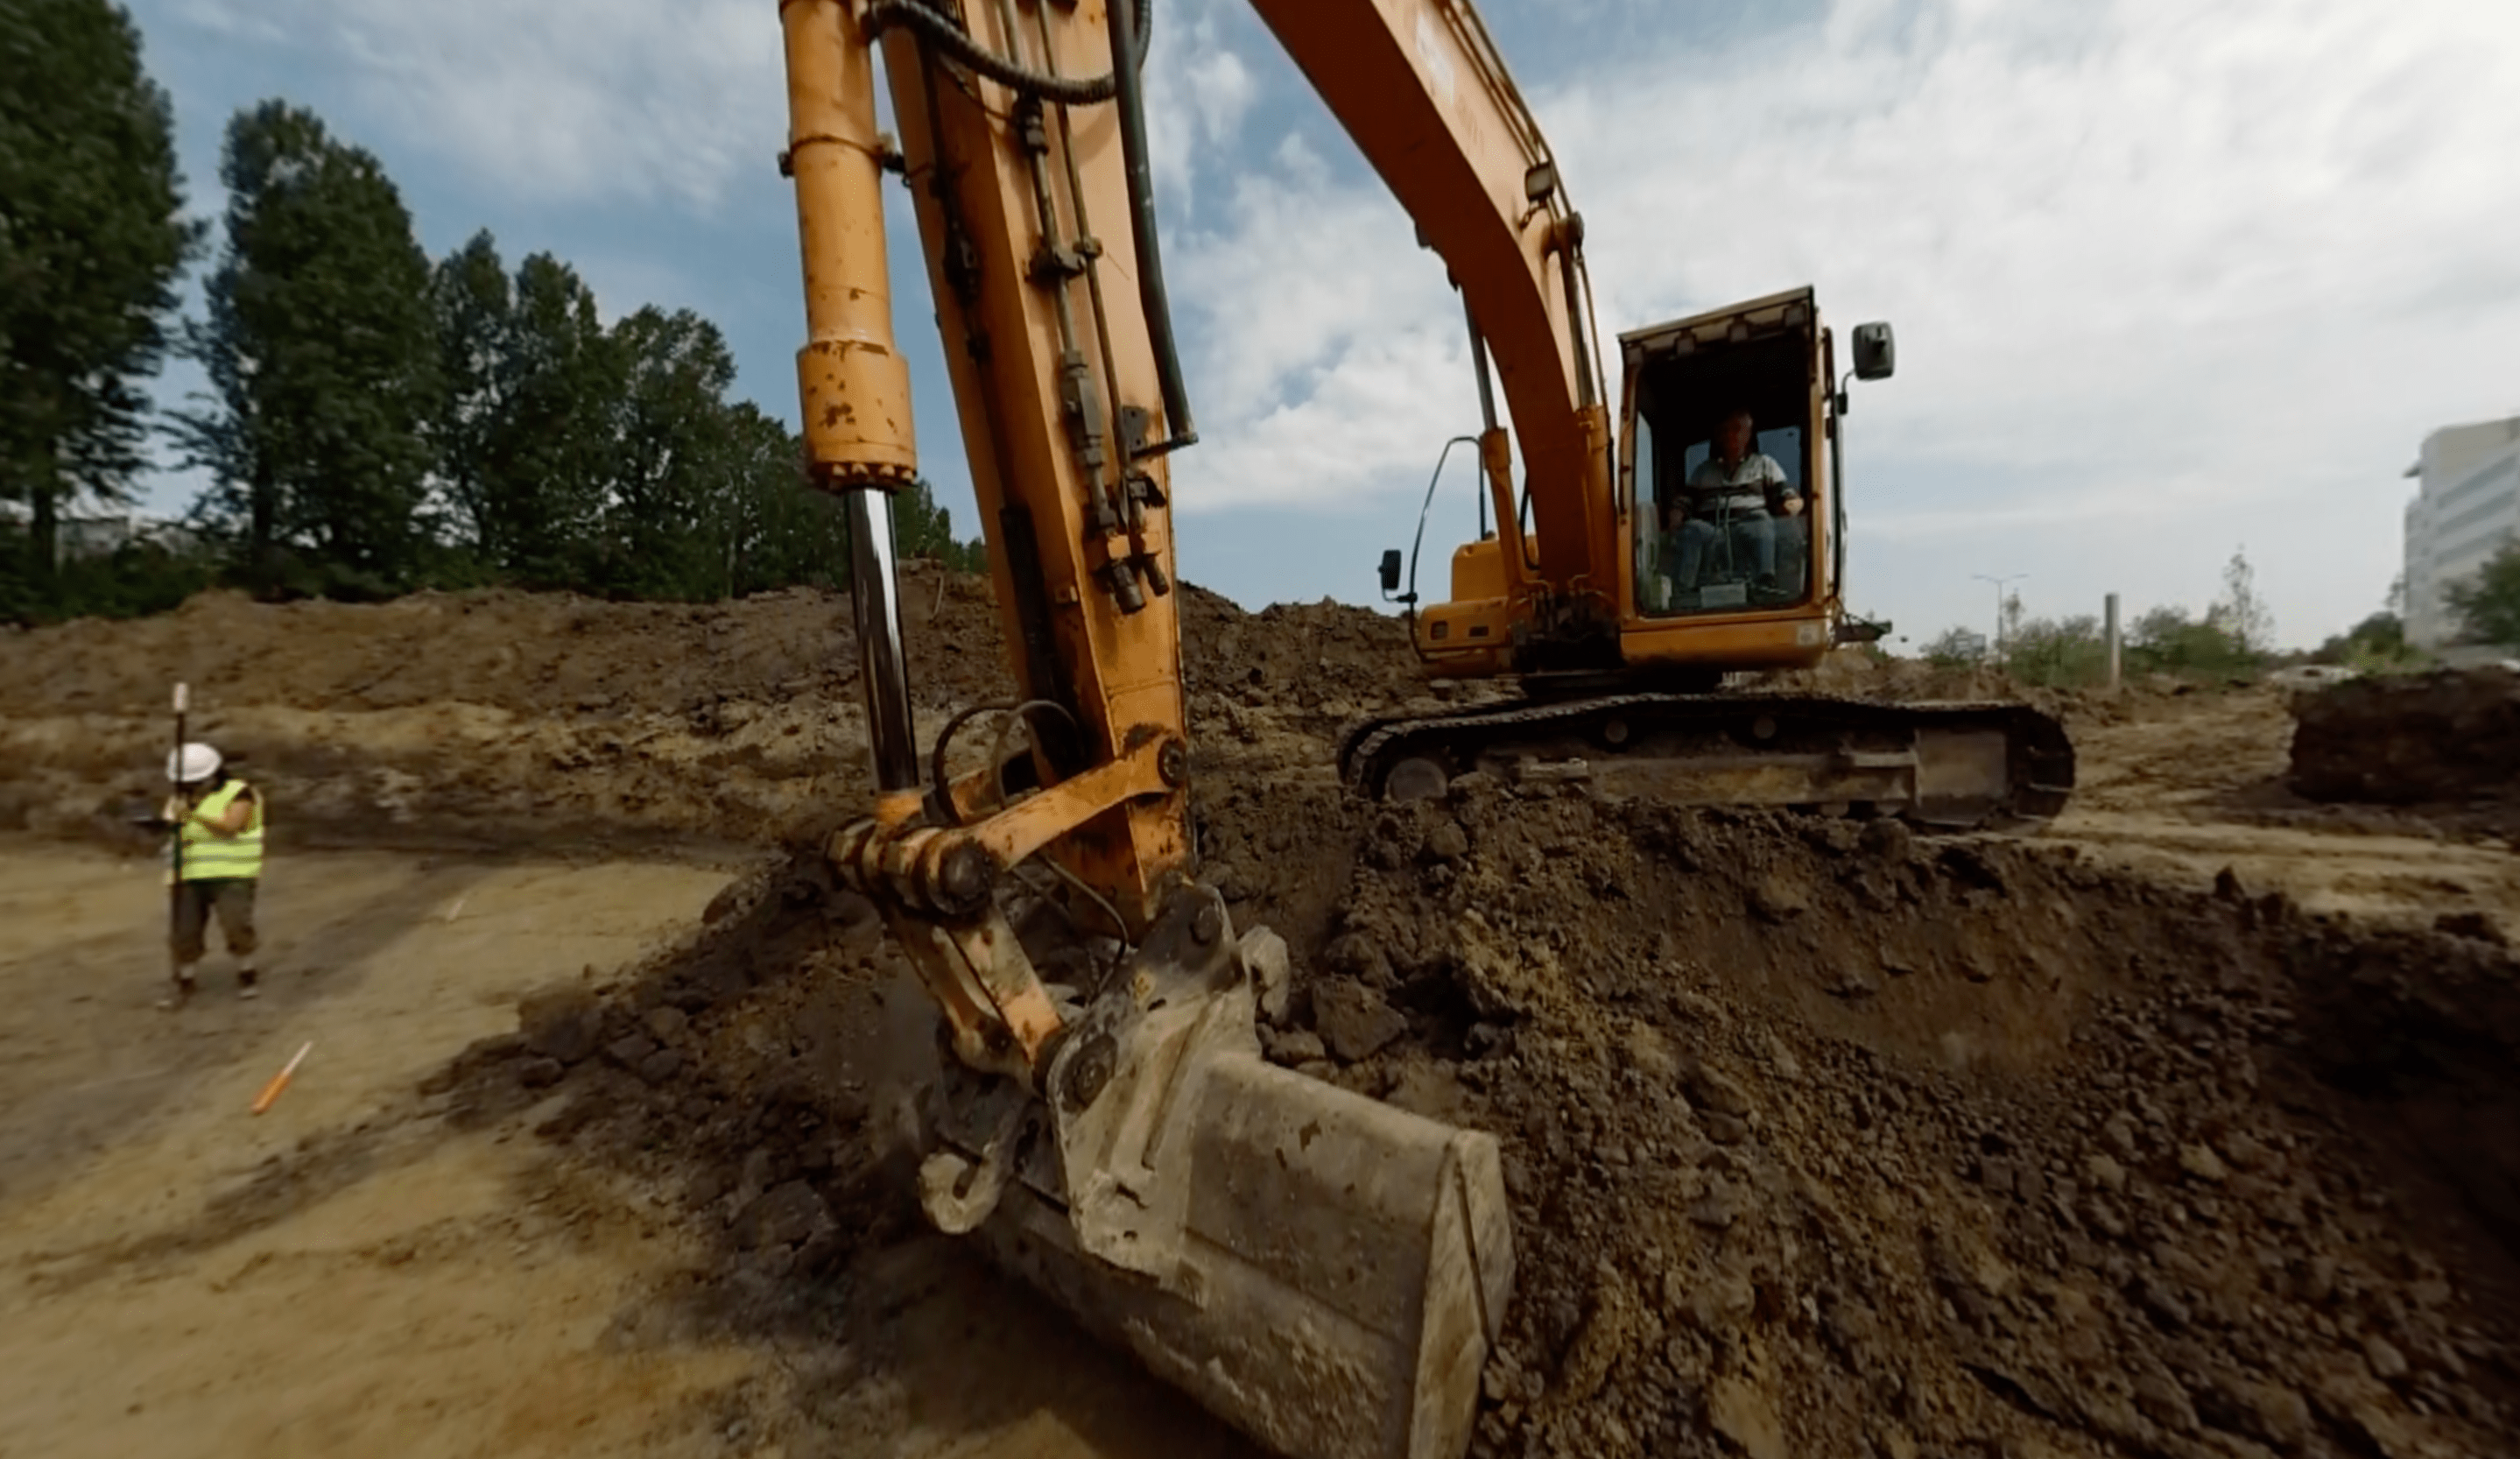 Hazardous factors are shown in the application as well such as this excavator taking care of taking of another layer of soil from the trench.